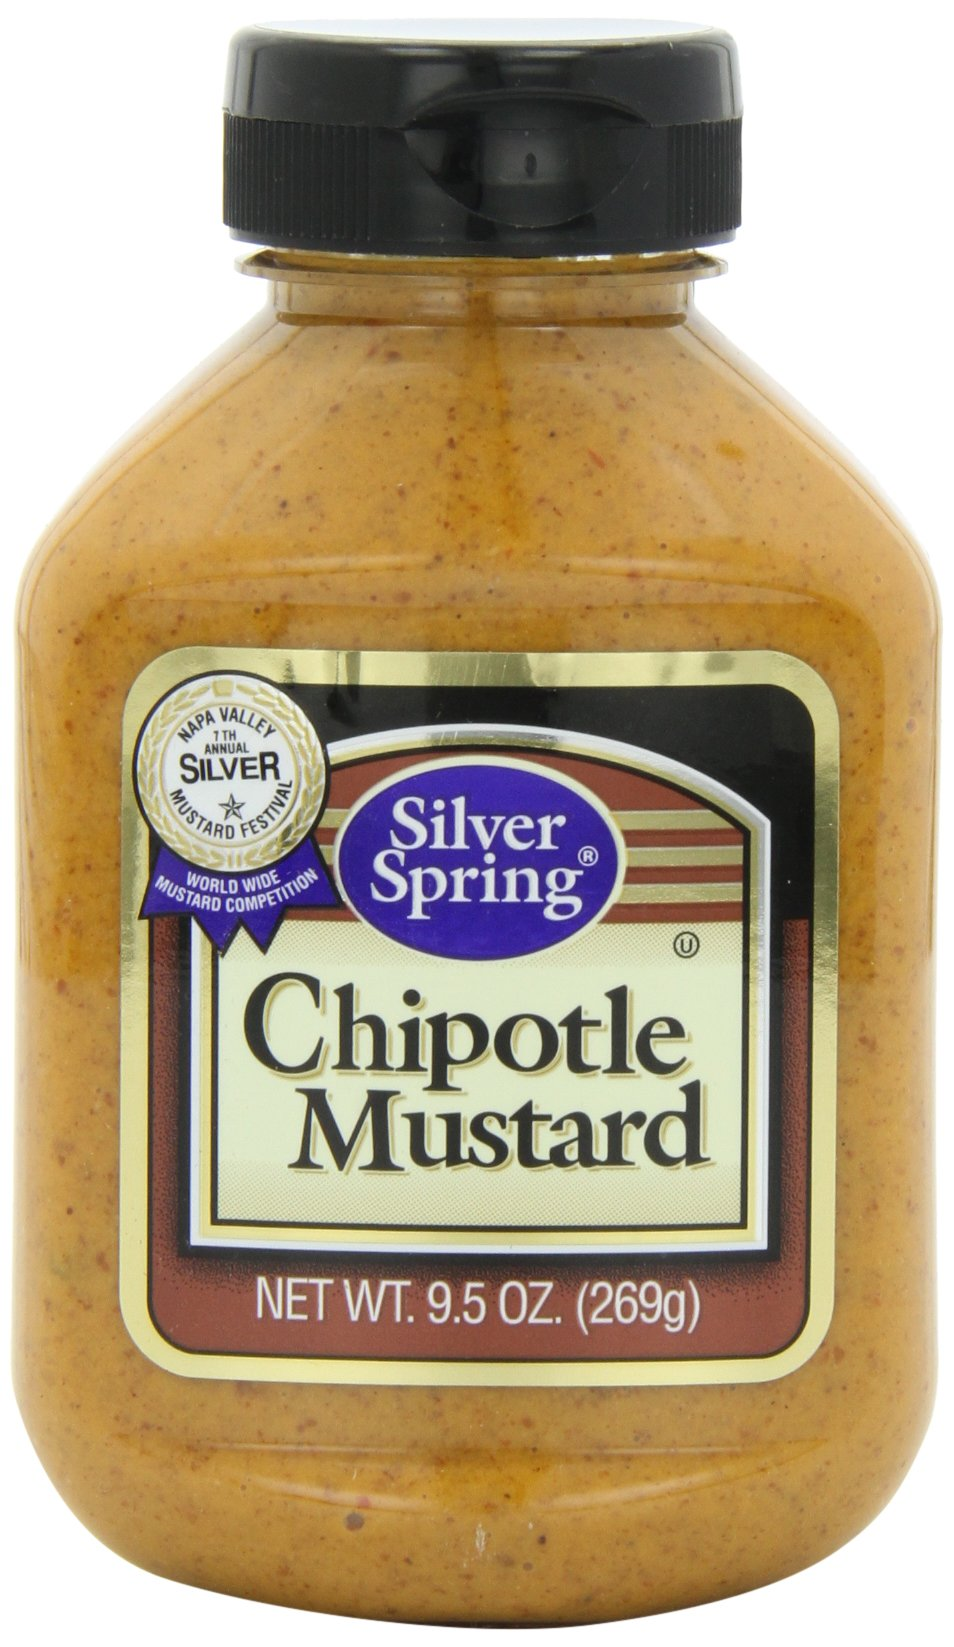 Silver Springs Mustard, Chipotle, 9.5-Ounce Squeeze Bottles (Pack of 9)